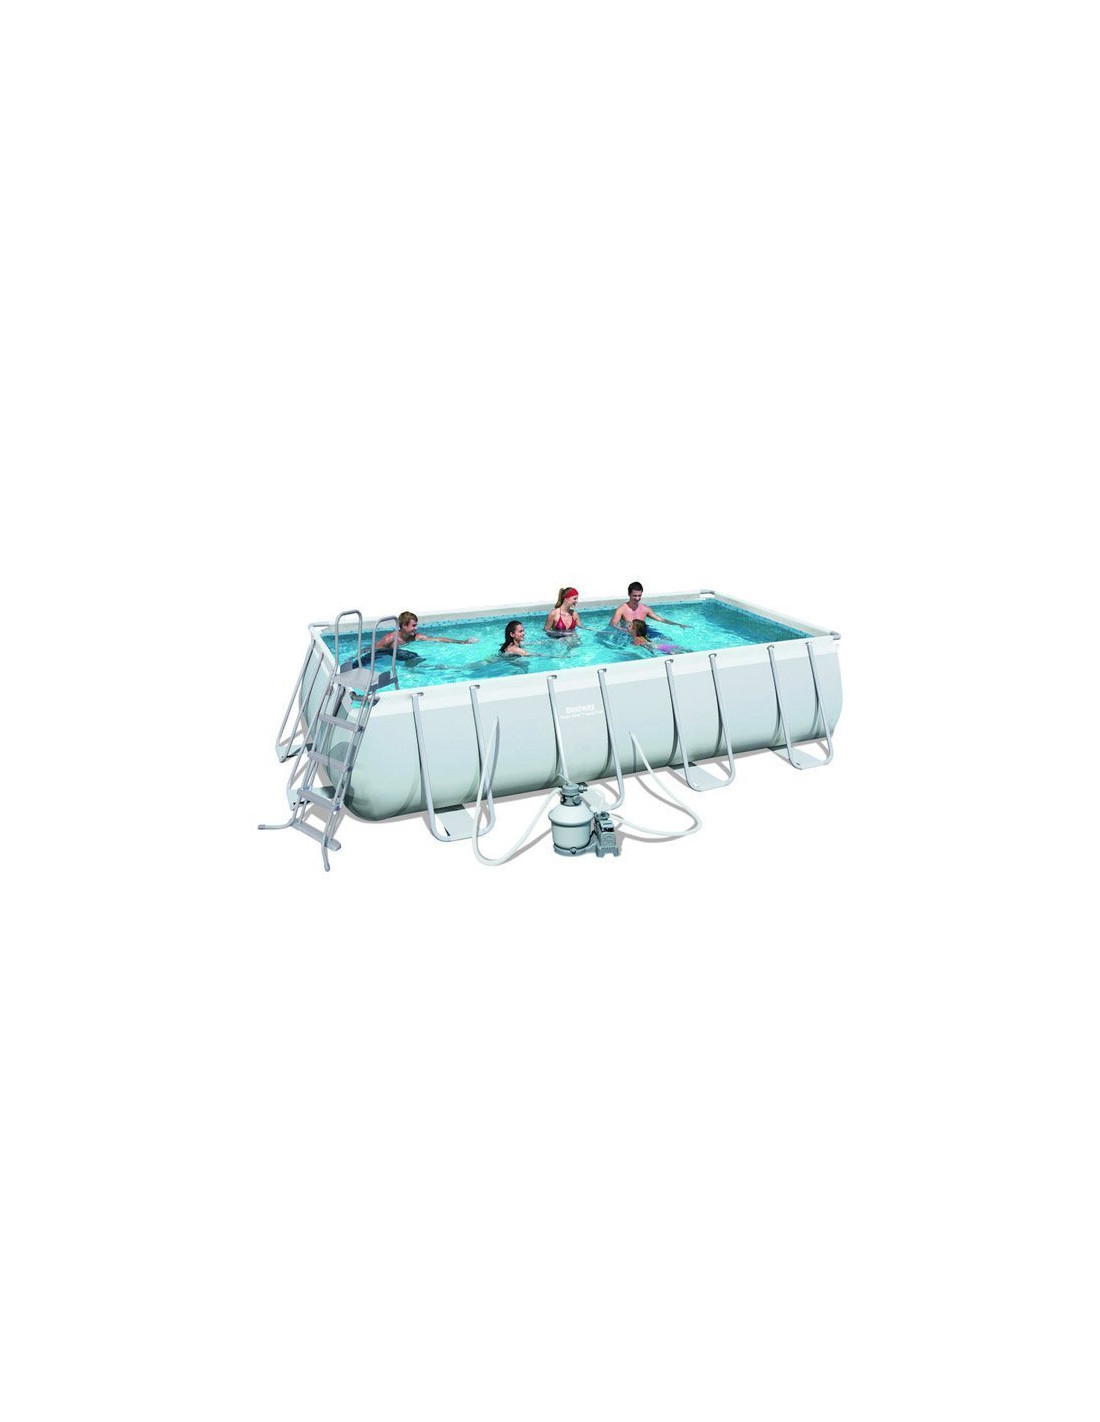 Piscine tubulaire rectangulaire bestway avec filtre sable for Piscine hors sol dimension